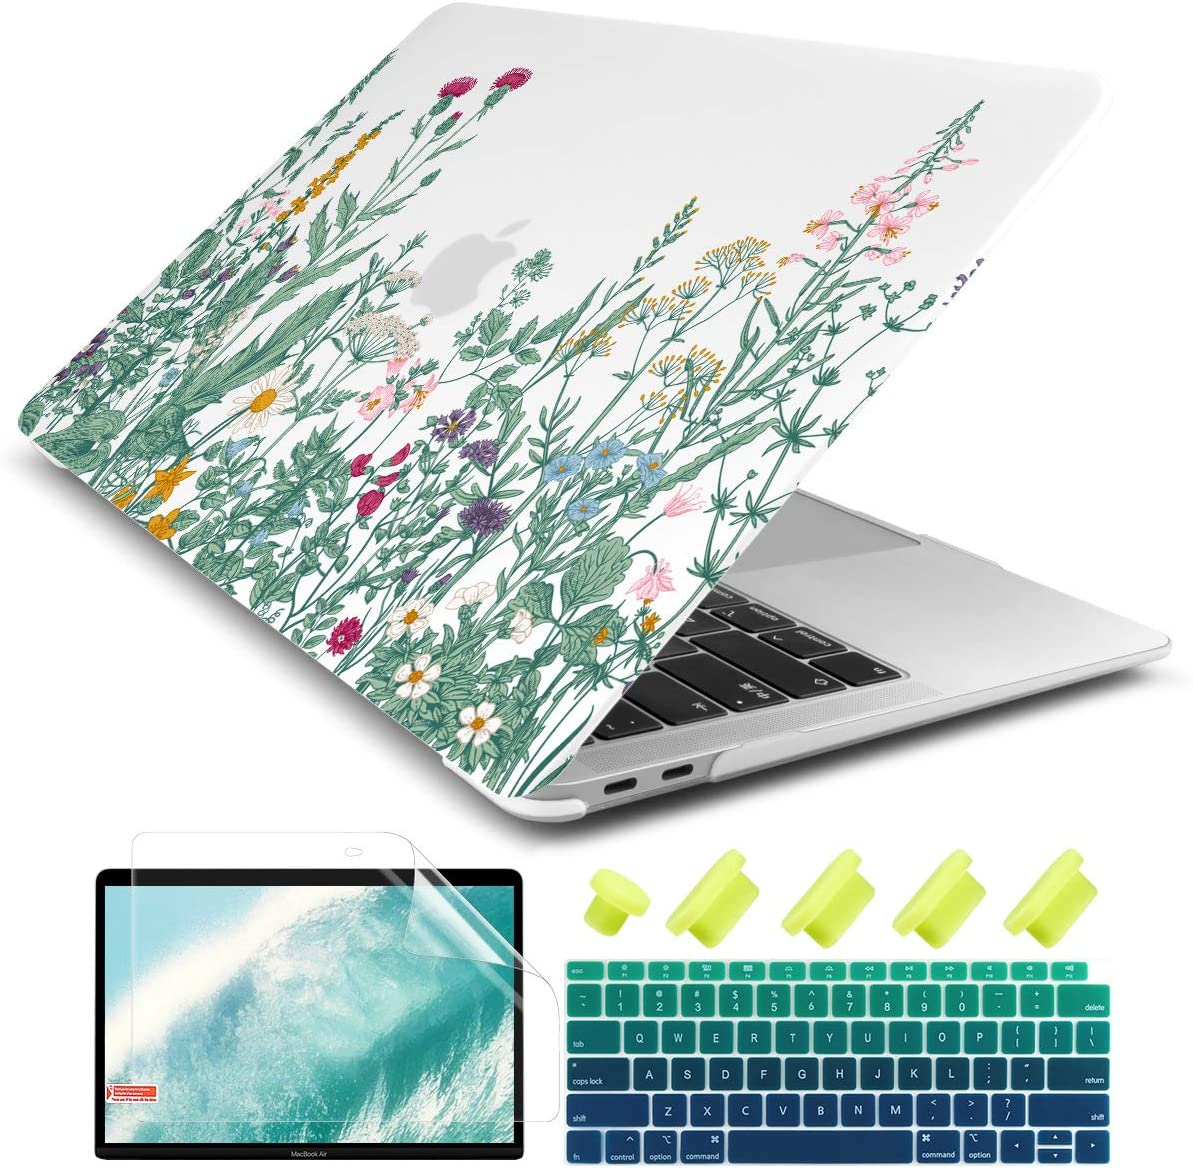 "Dongke New MacBook Air 13 Inch Case 2020 2019 2018 Release Model: A2179/A1932, Frosted Matte Clear Hard Shell Cover for MacBook Air 13"" with Retina Display & Touch ID (Garden Floral)"